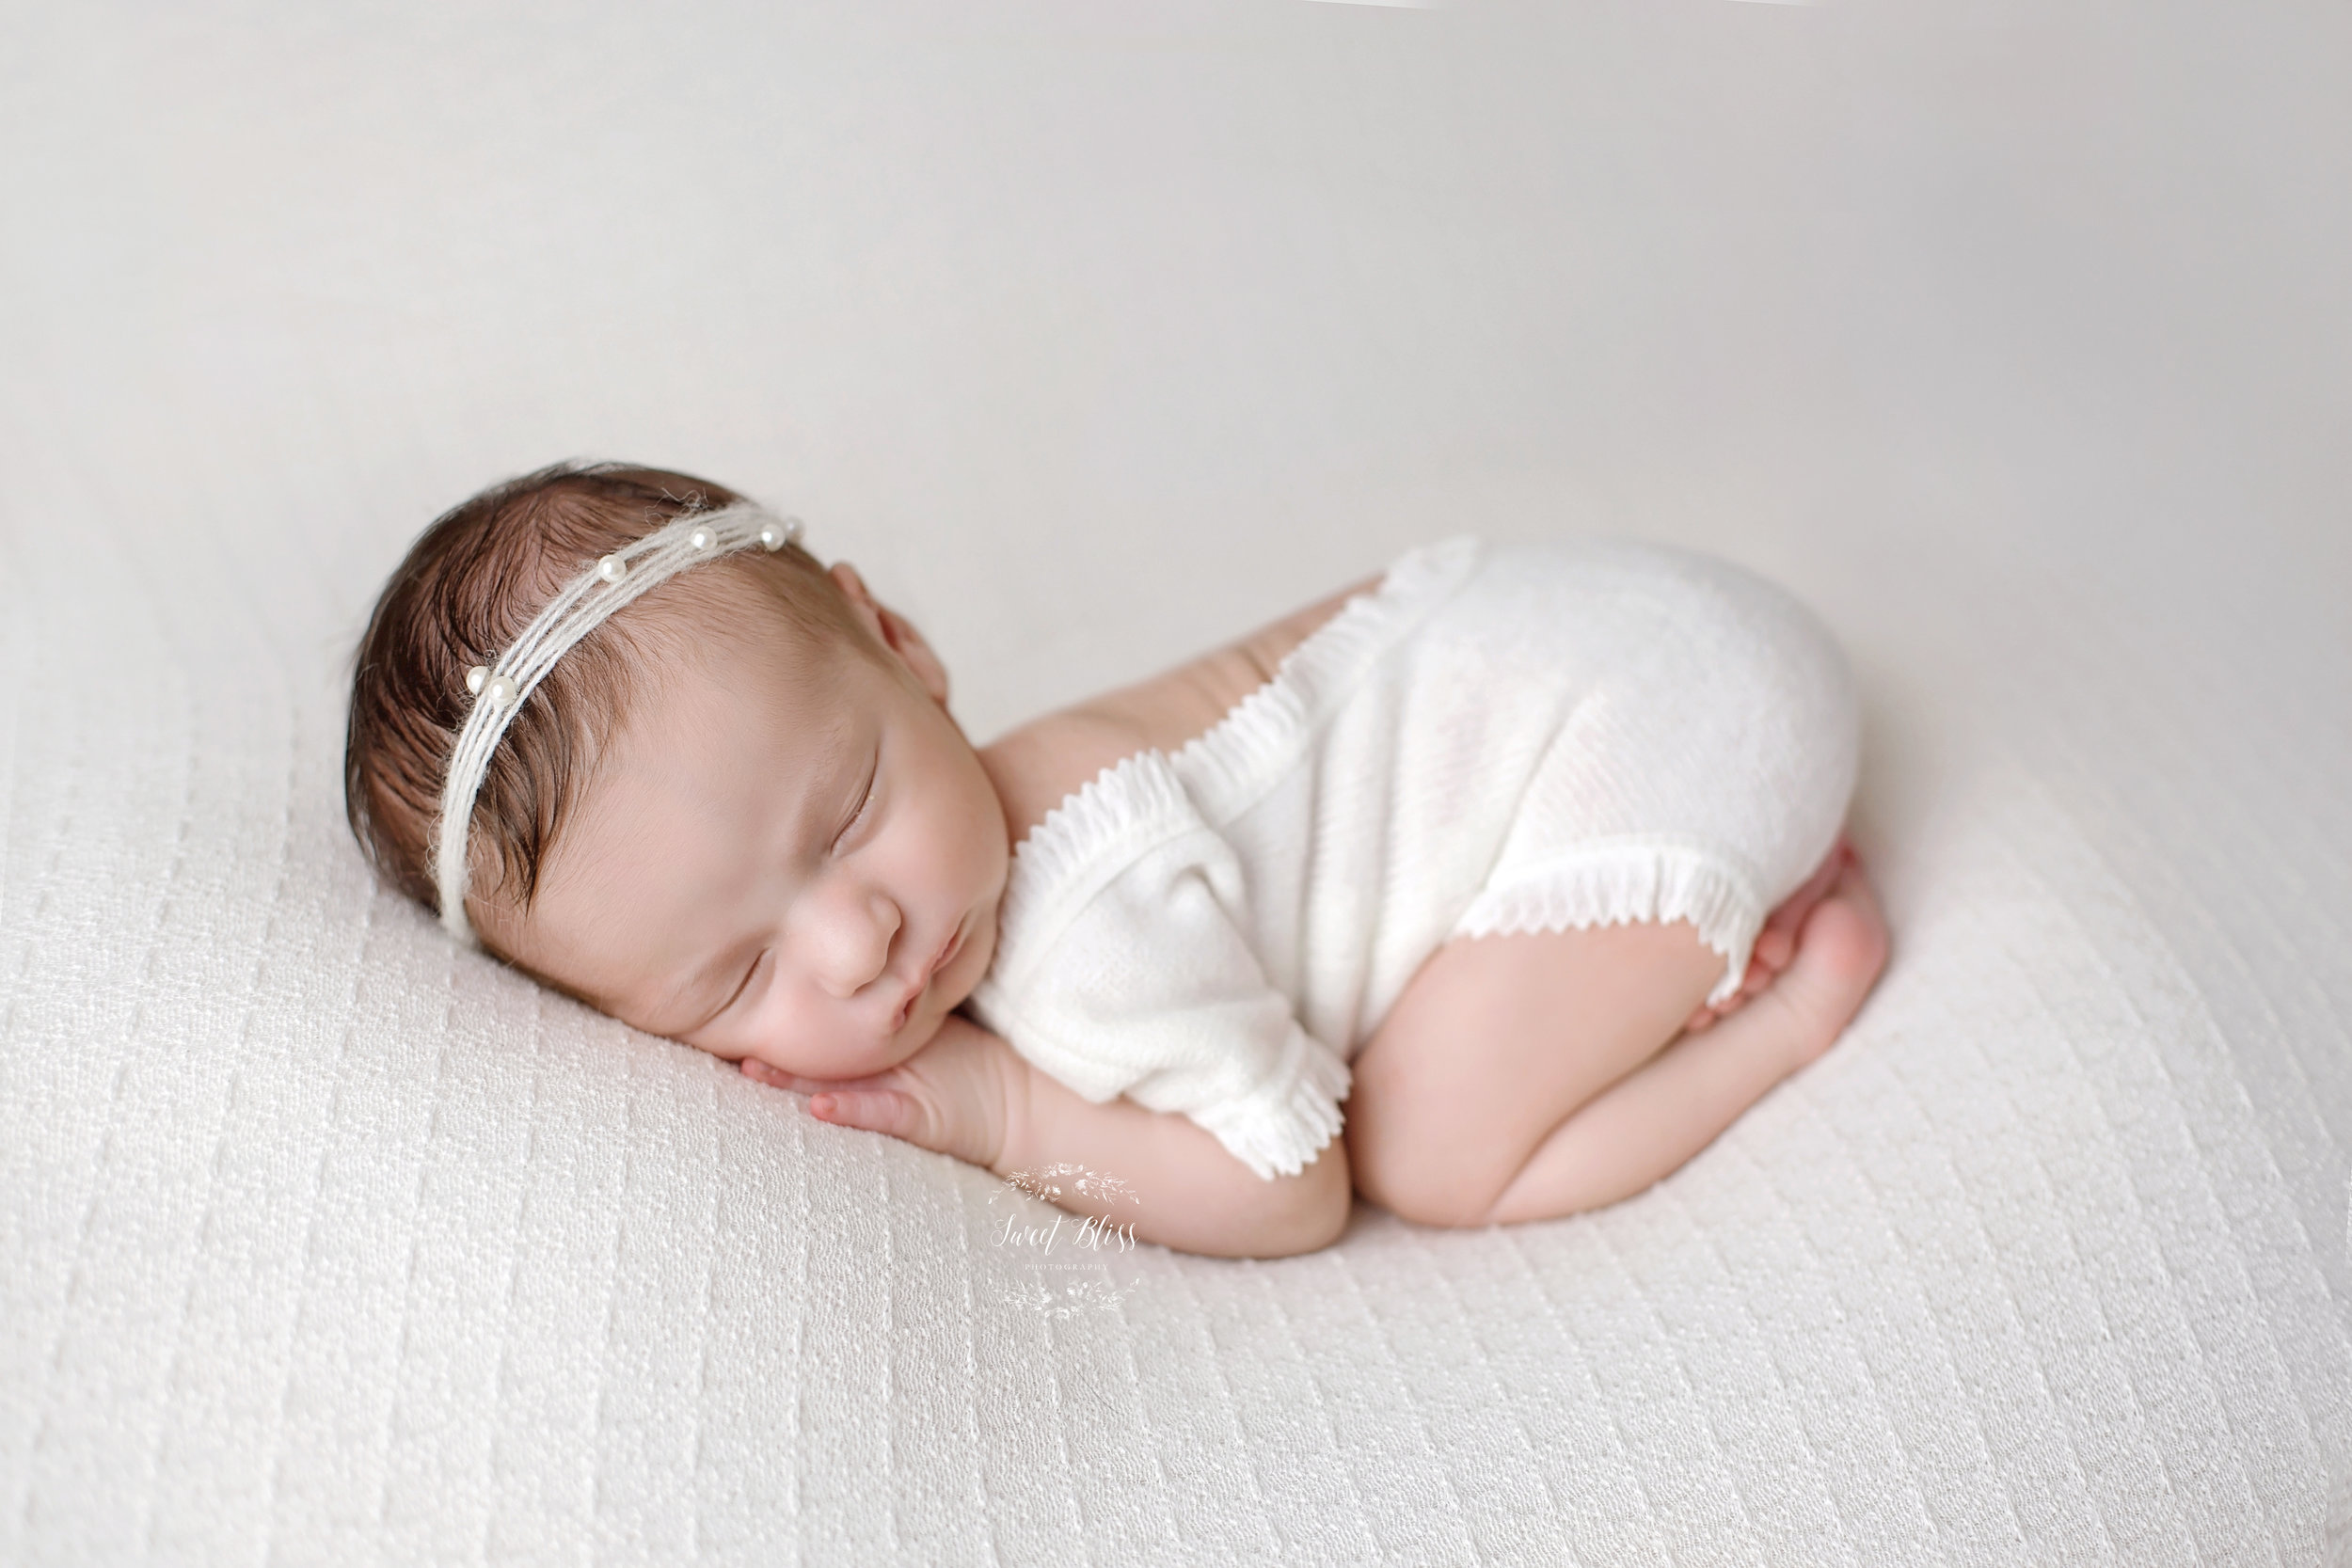 Baltimorenewbornphotographer_sweetblissphotography_blackandwhitecloseup7.jpg